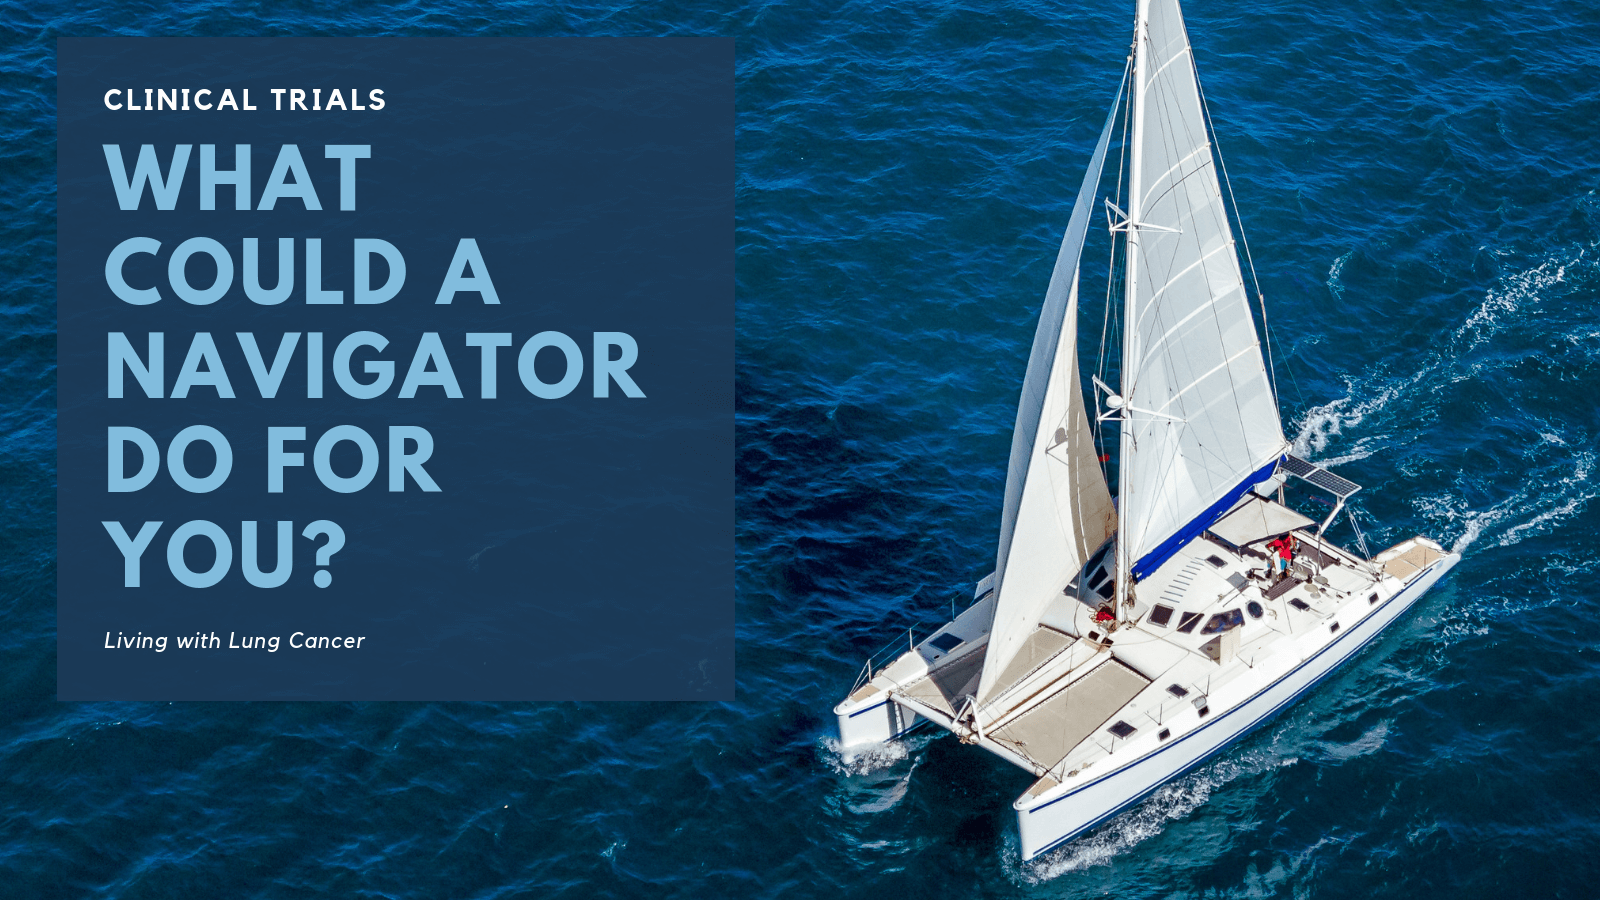 what could a clinical trial navigator do for you?